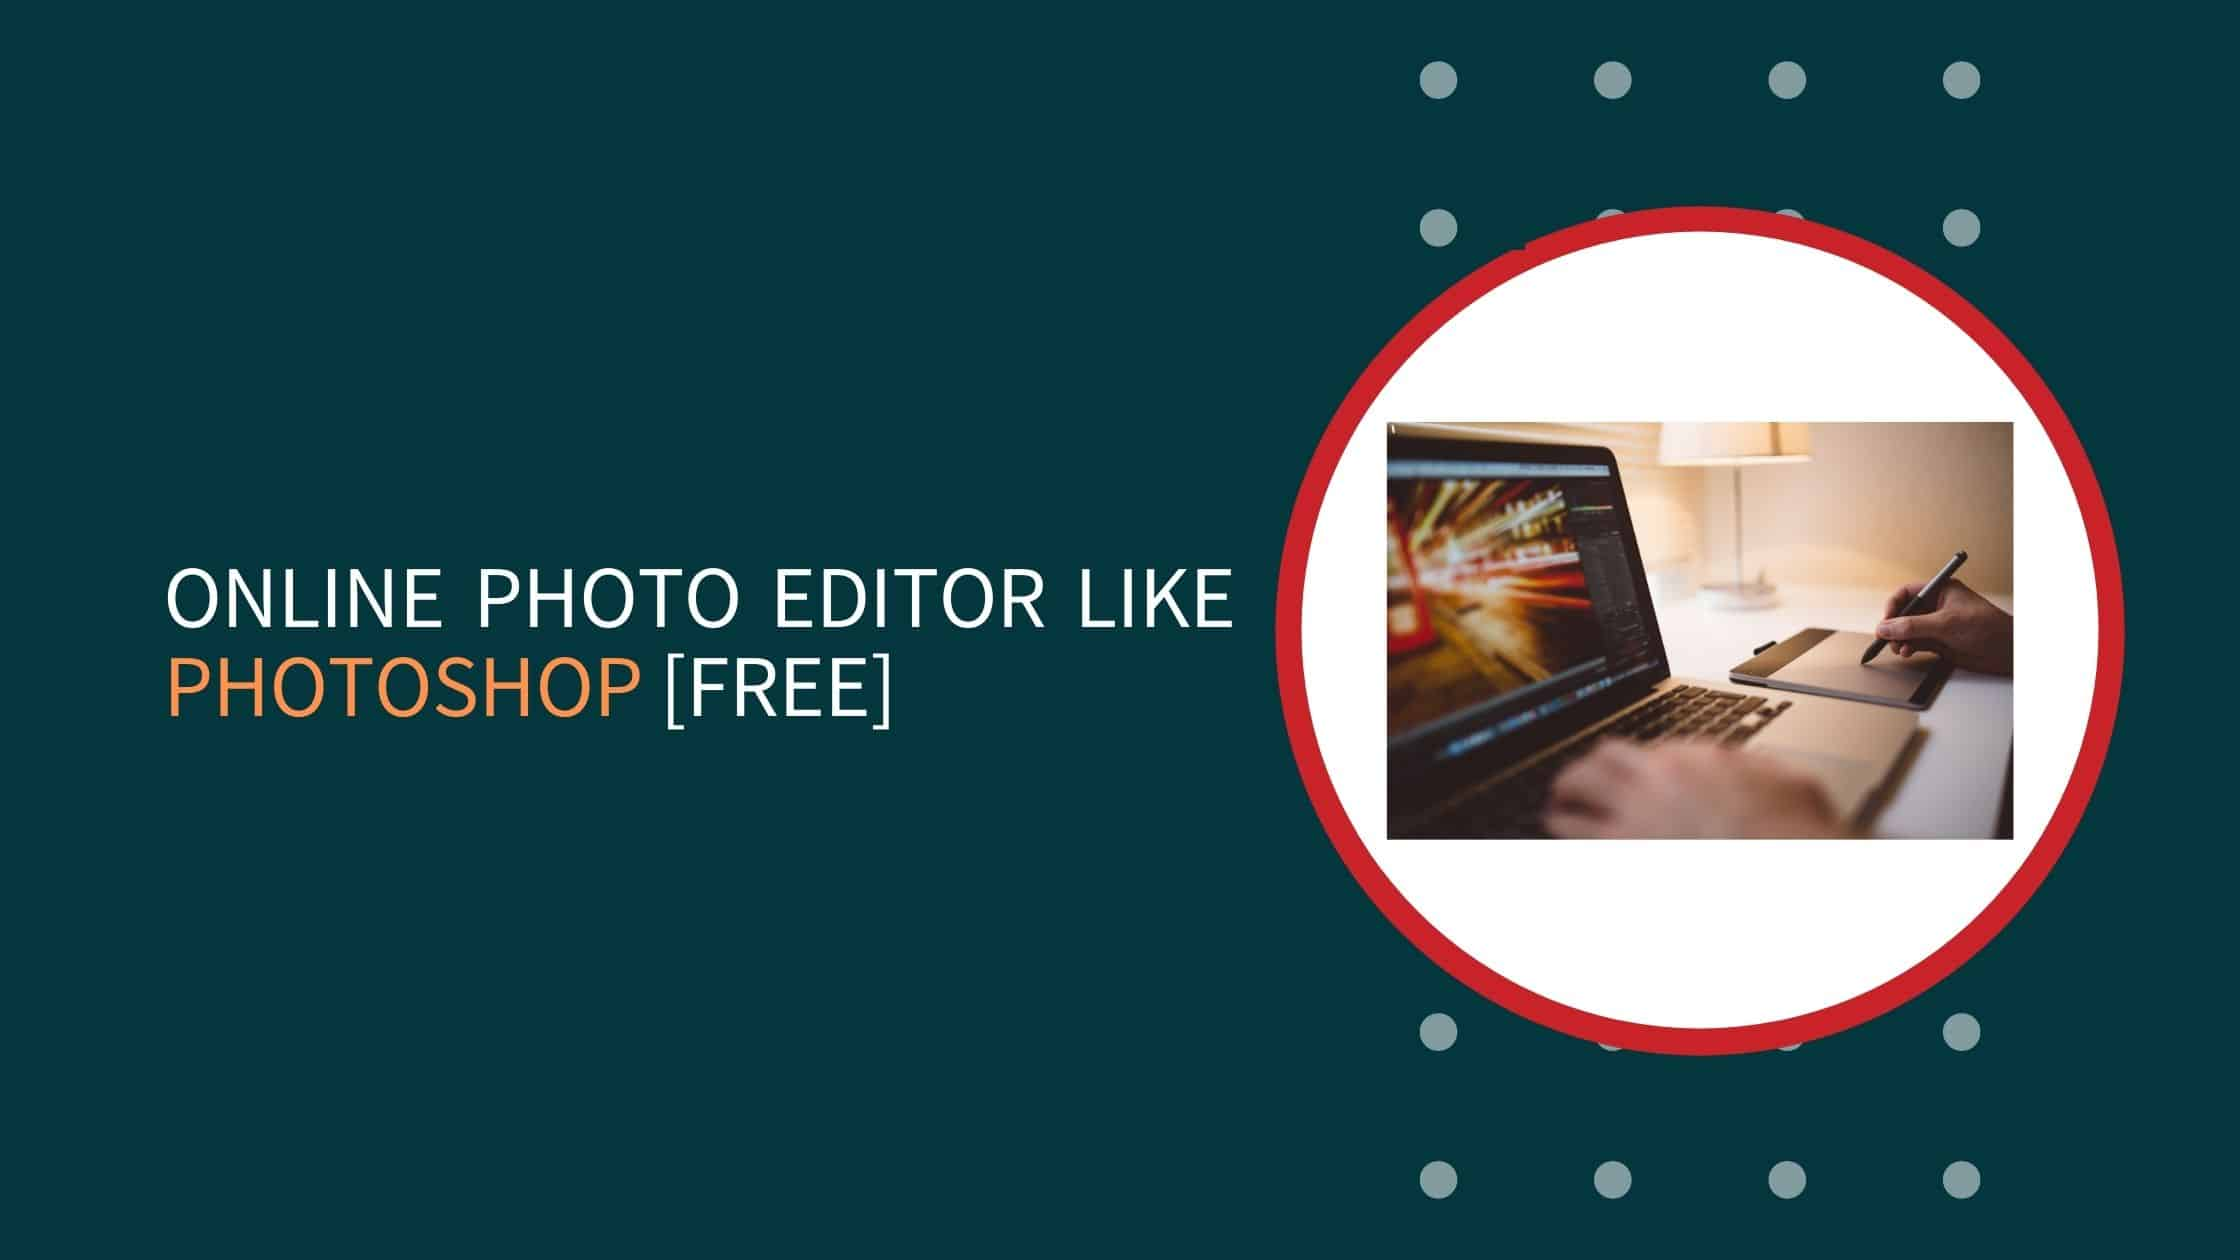 5 Free Best Online Photo Editor Like Photoshop In 2020